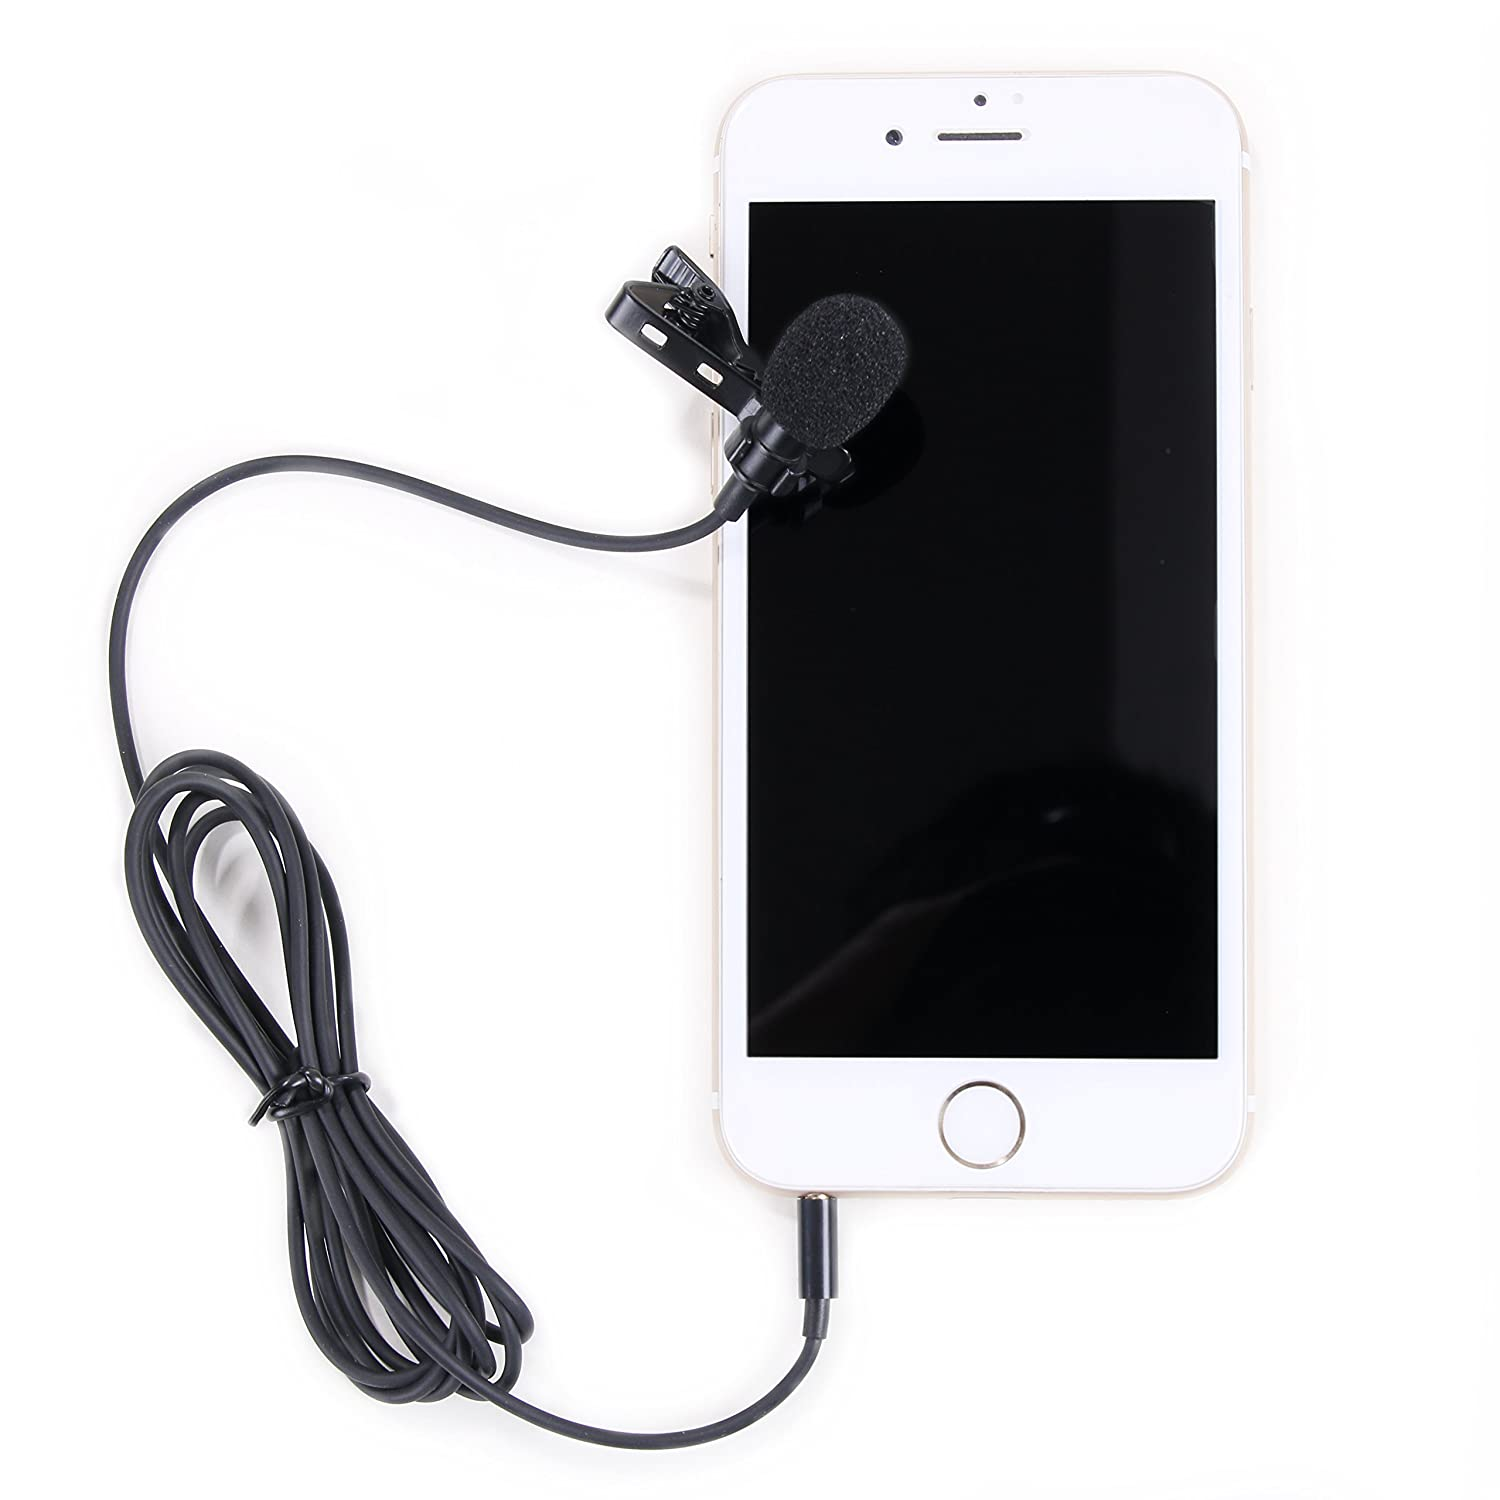 MUXMA Omnidirectional Professional Grade Lavalier Condenser Microphone- Easy Lapel Clip On System- Perfect Hands Free Recording for Youtube -is compatible with Apple iPhone and CTIA Compatible Device MXMC002-Lavalier-35